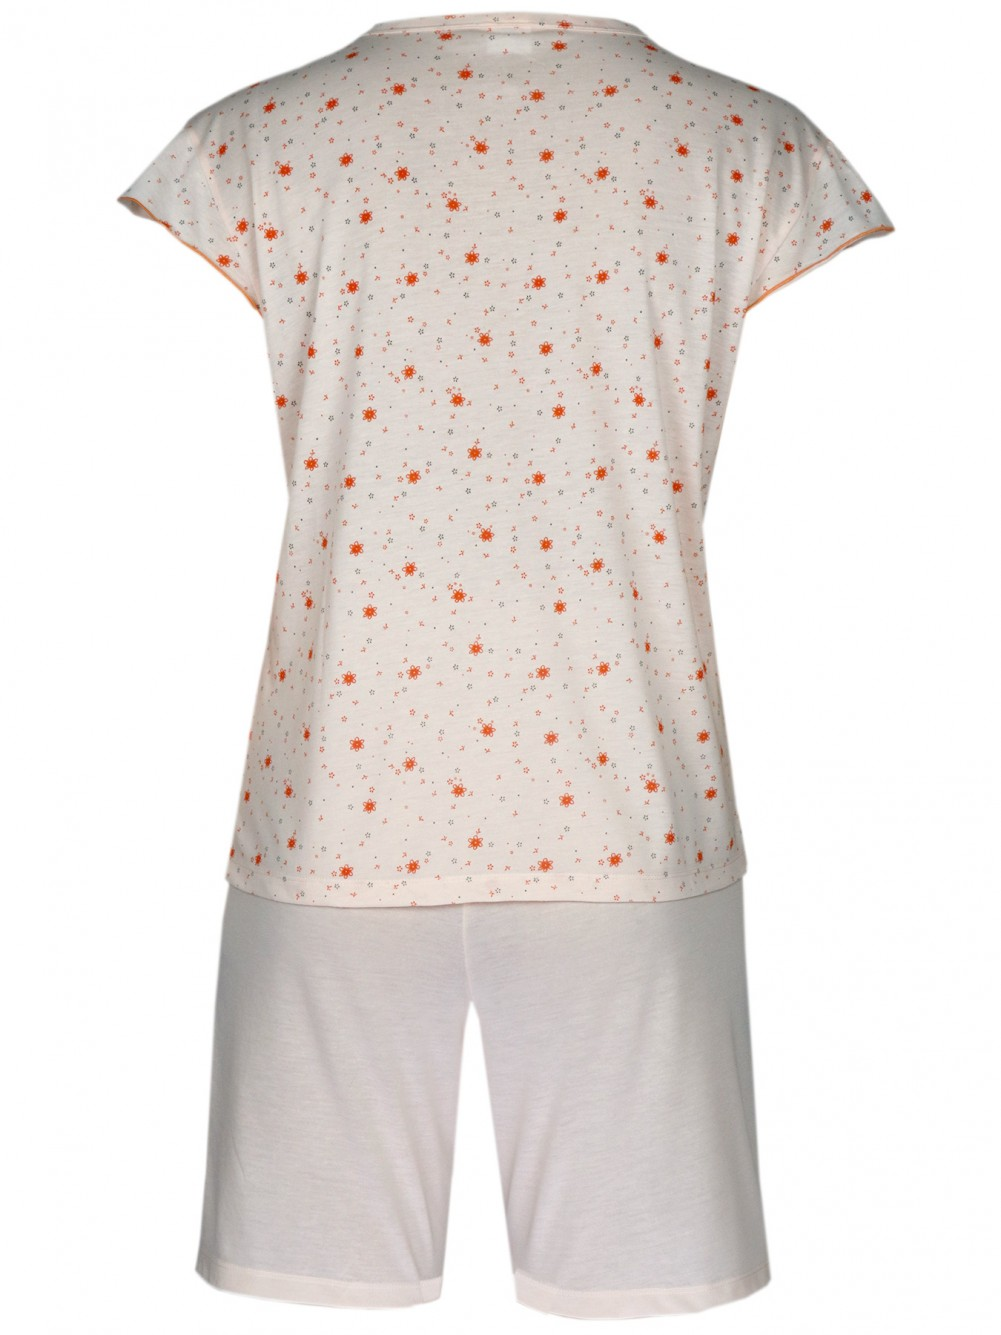 Damen Kurz-Pyjama, Shorty Set 100% Baumwolle - Orange/Hinteransicht